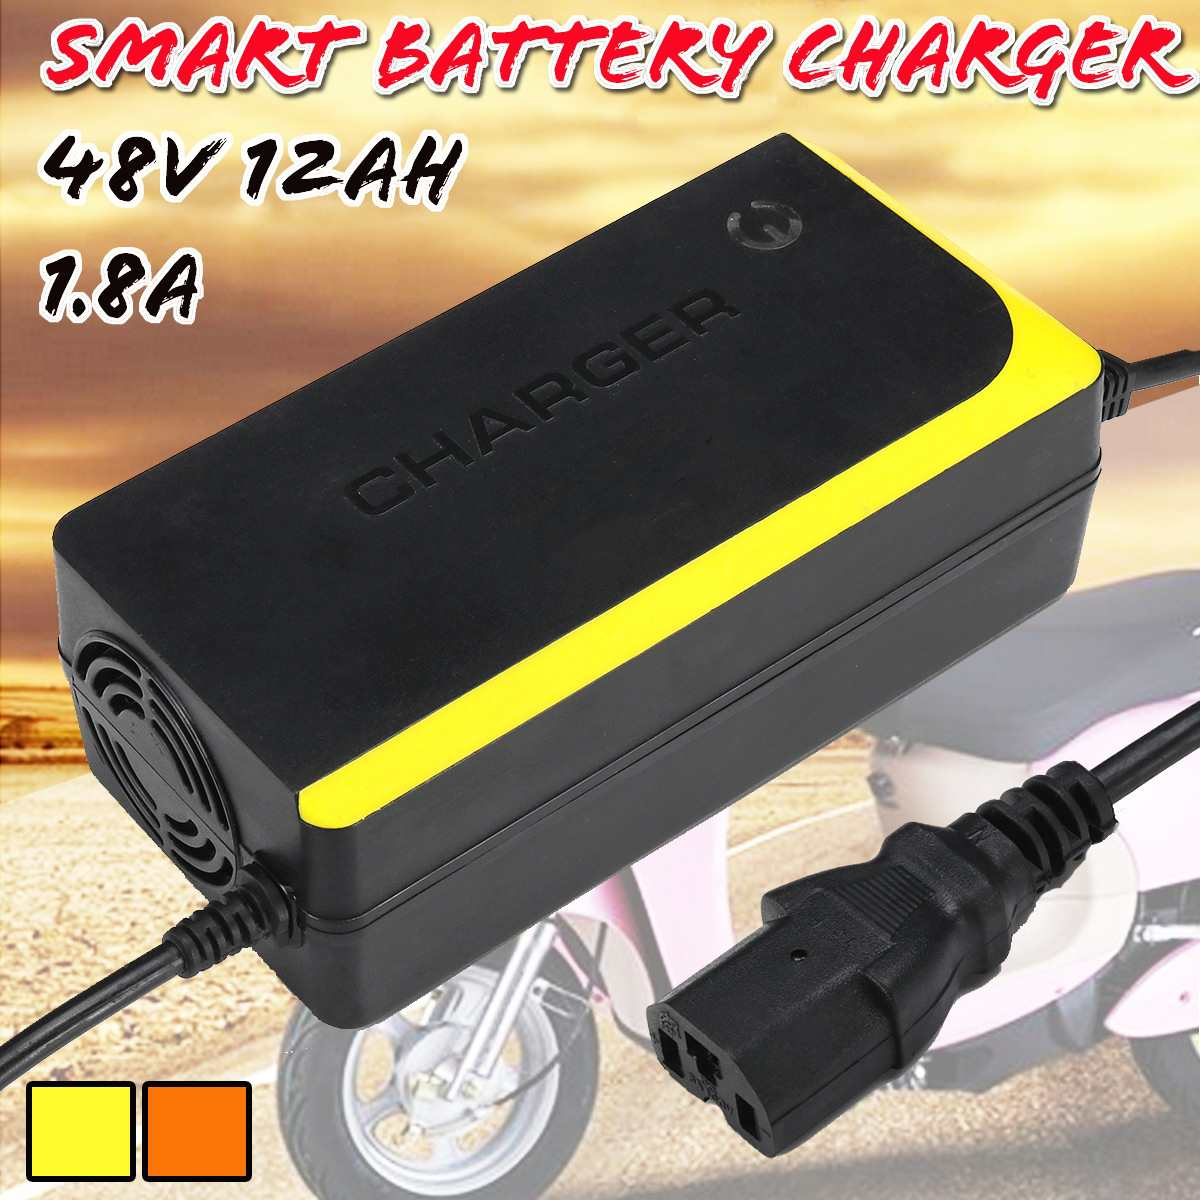 48V 12AH Electric Bicycle Bike Scooters Motorcycle Charger Smart  Supply Lead Acid Battery Charger 48V 1 8A 12AH